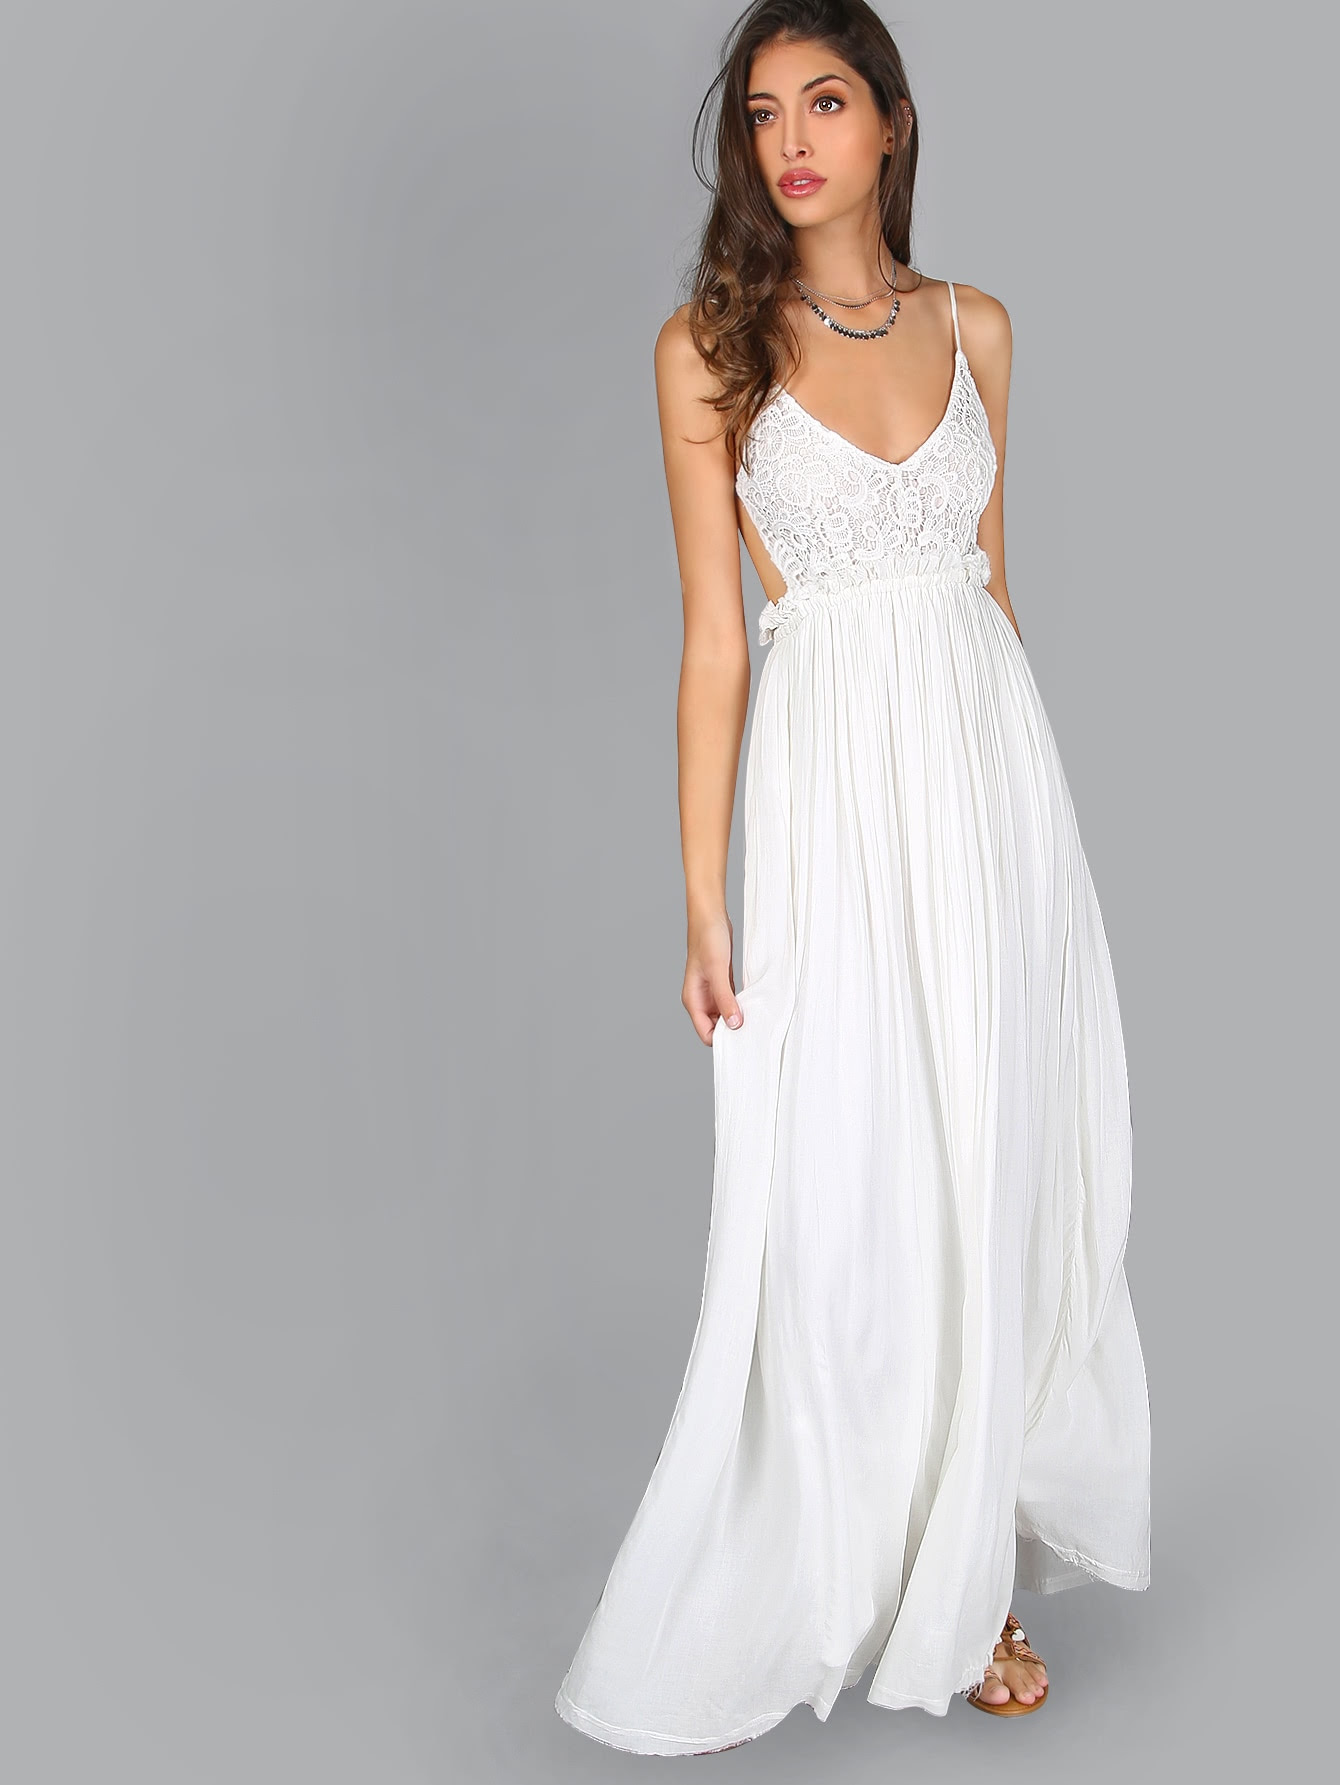 white halter backless yule crochet lace maxi dress - latest